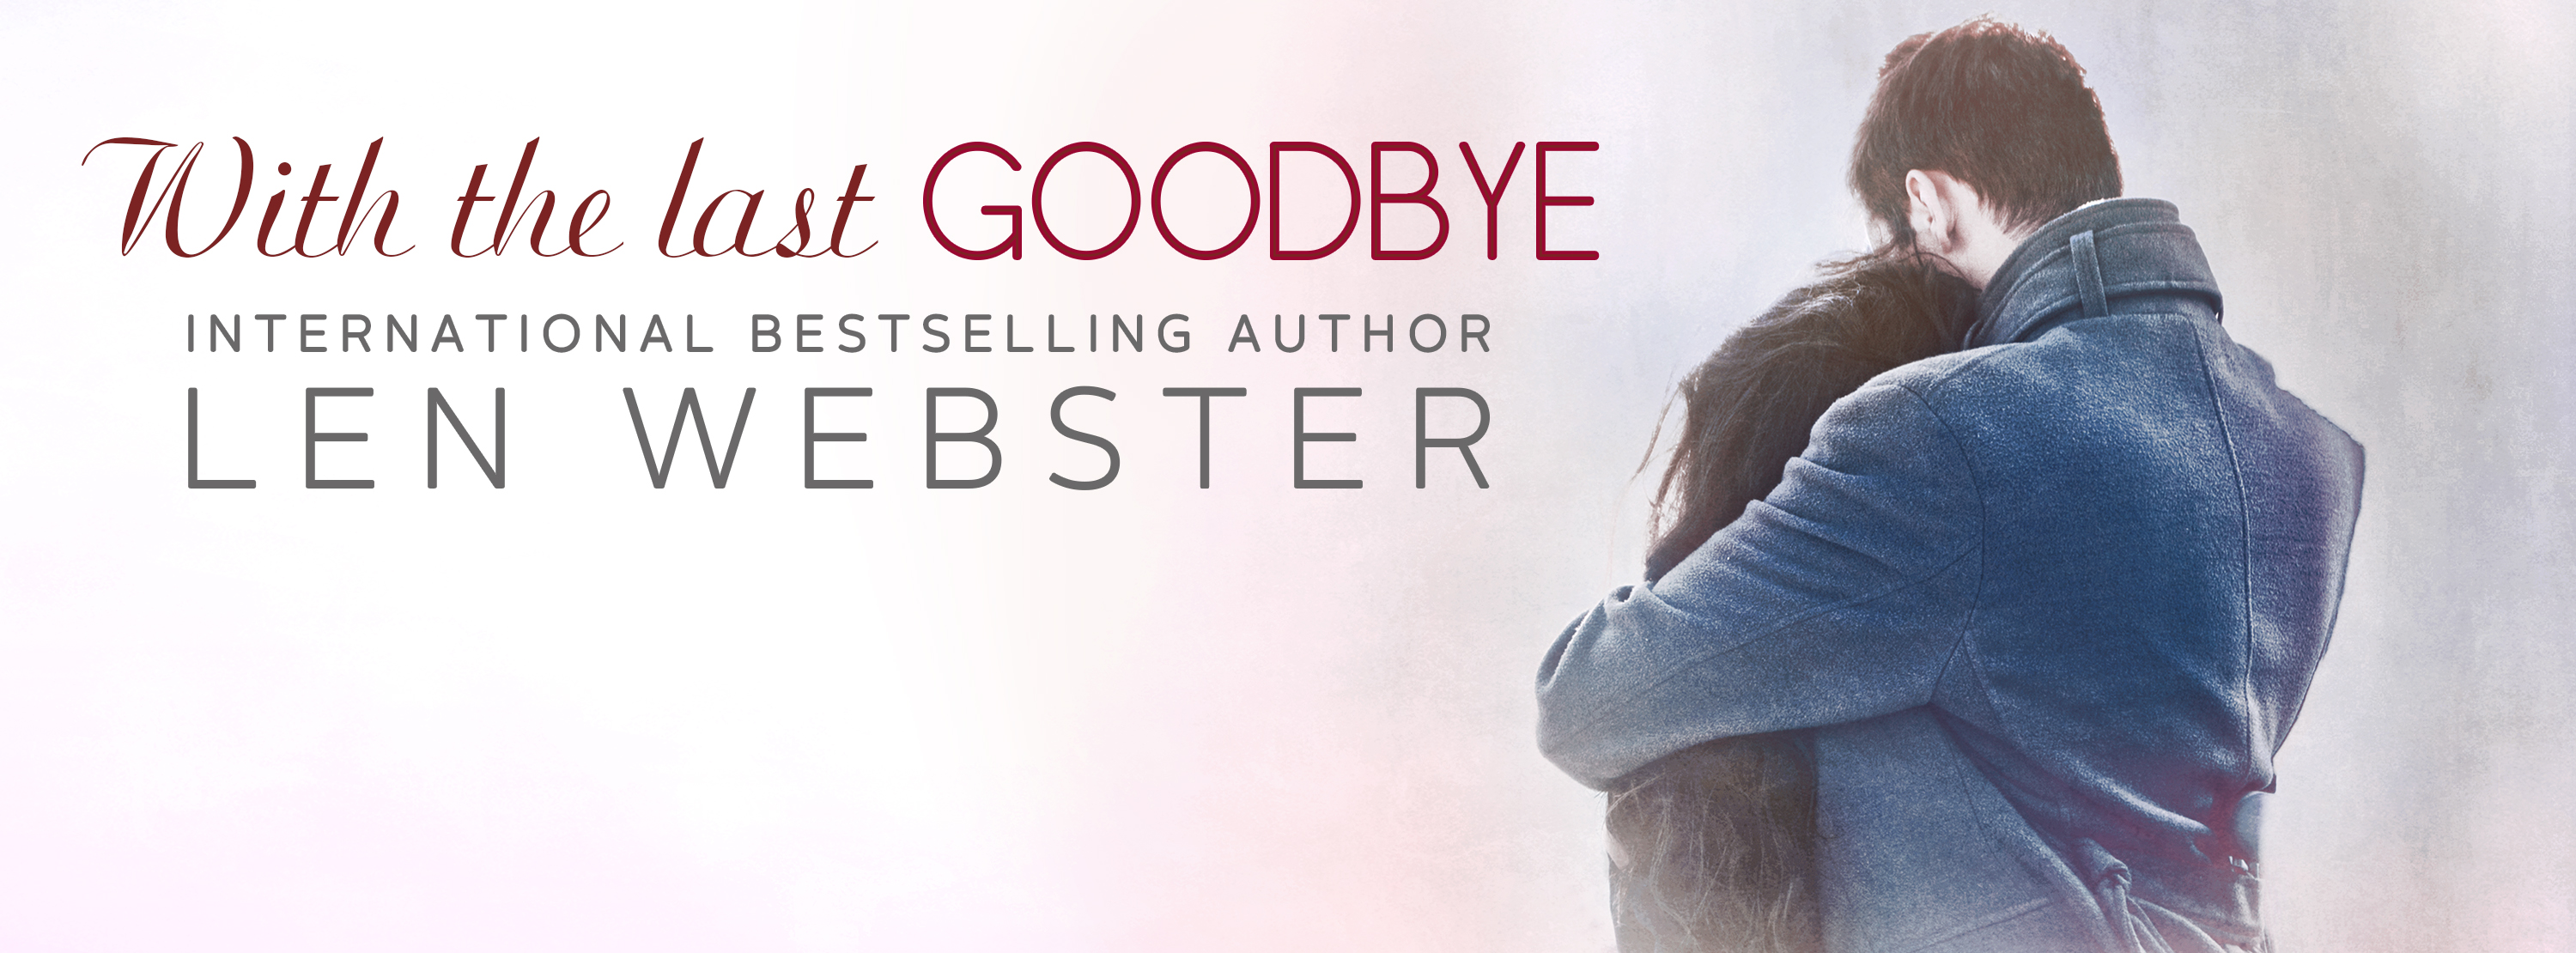 WithTheLastGoodbye-FBCover